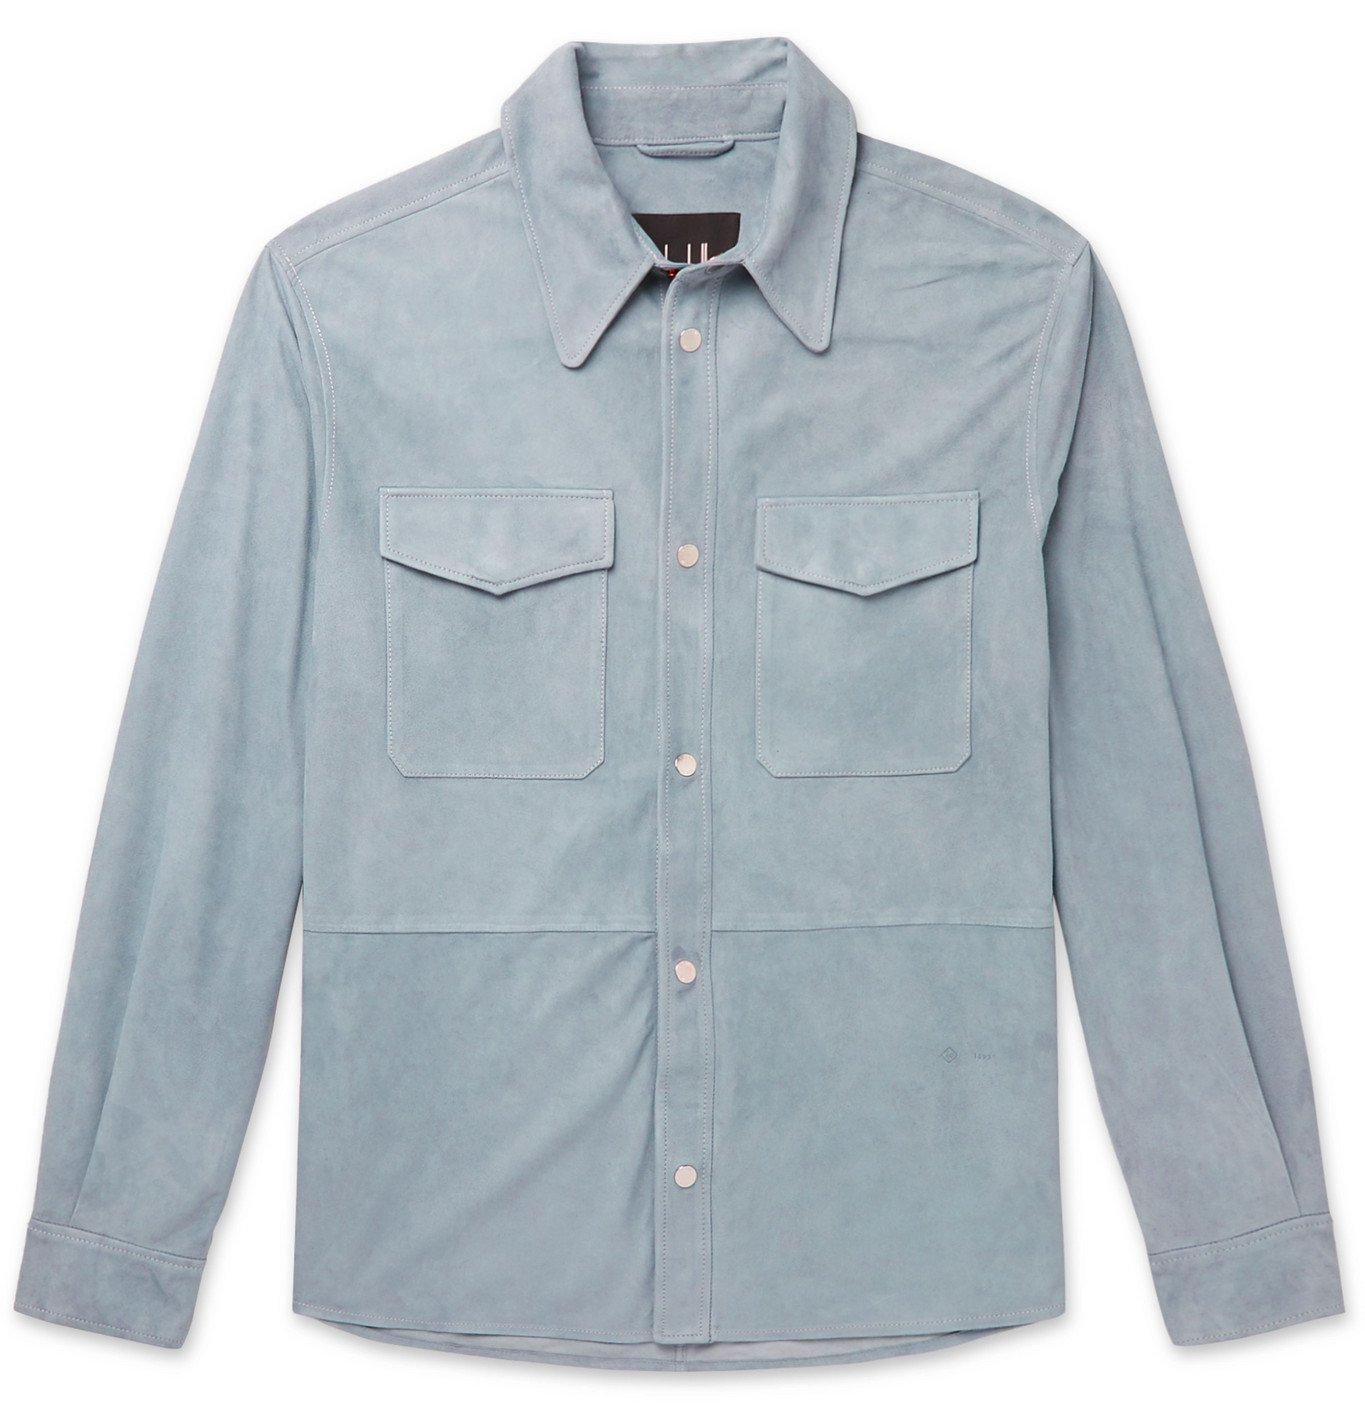 Dunhill - Suede Overshirt - Blue